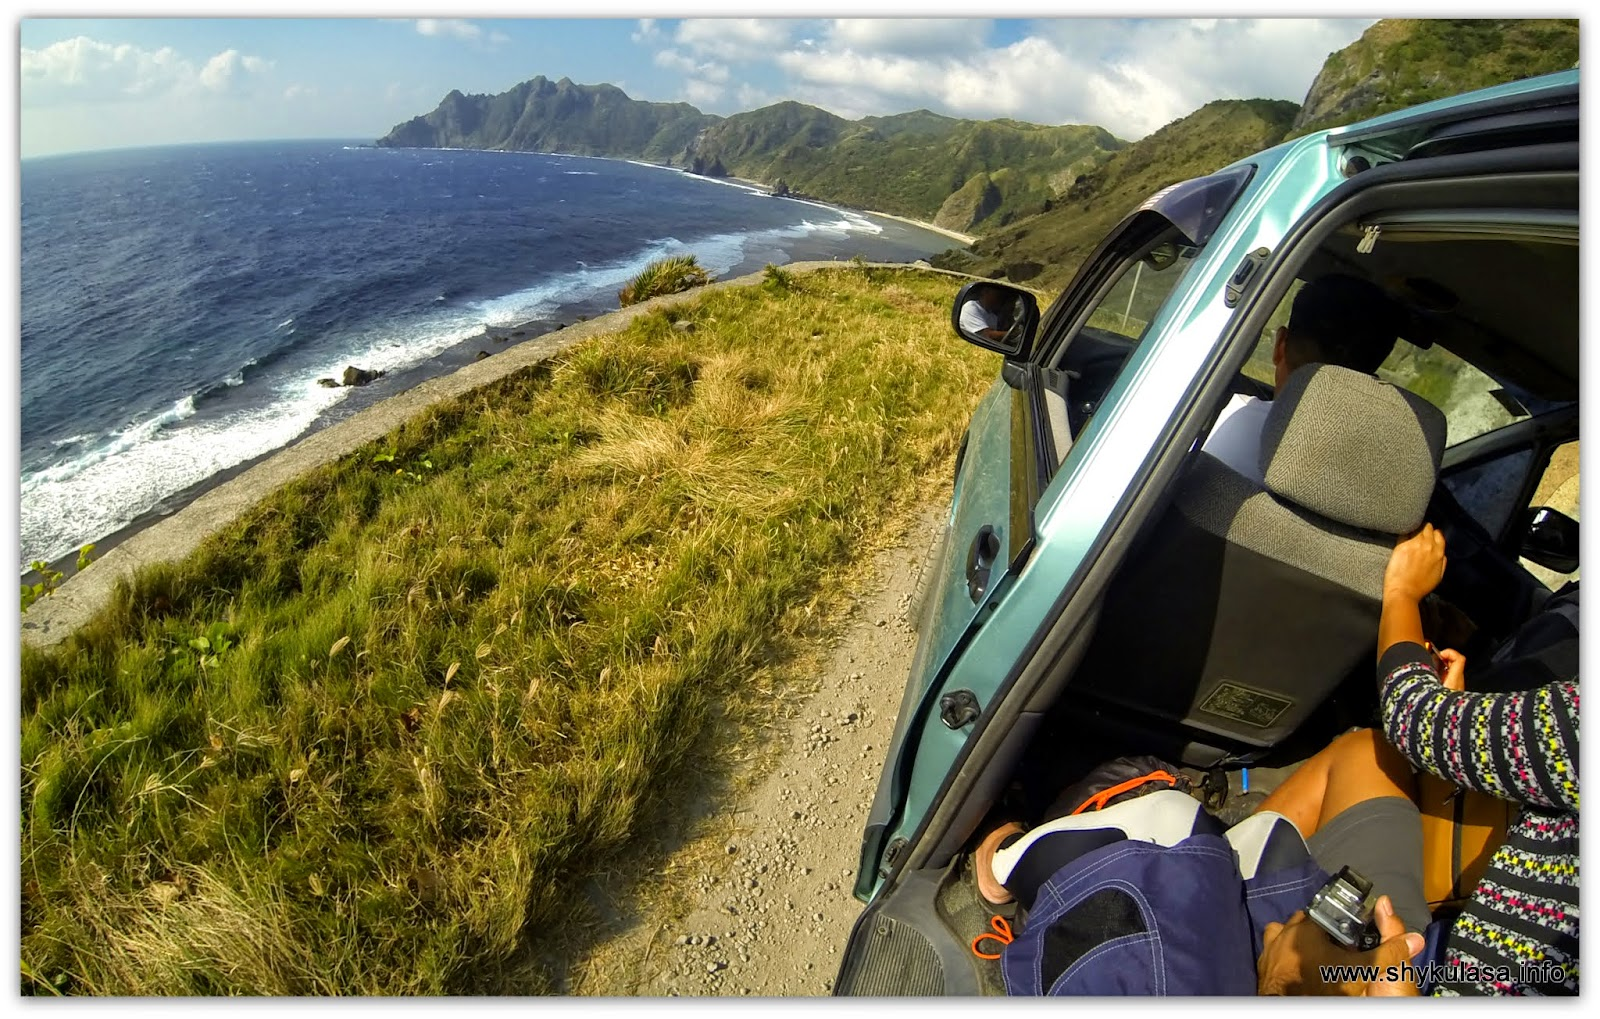 Coastal road at Sabtang Island, Batanes